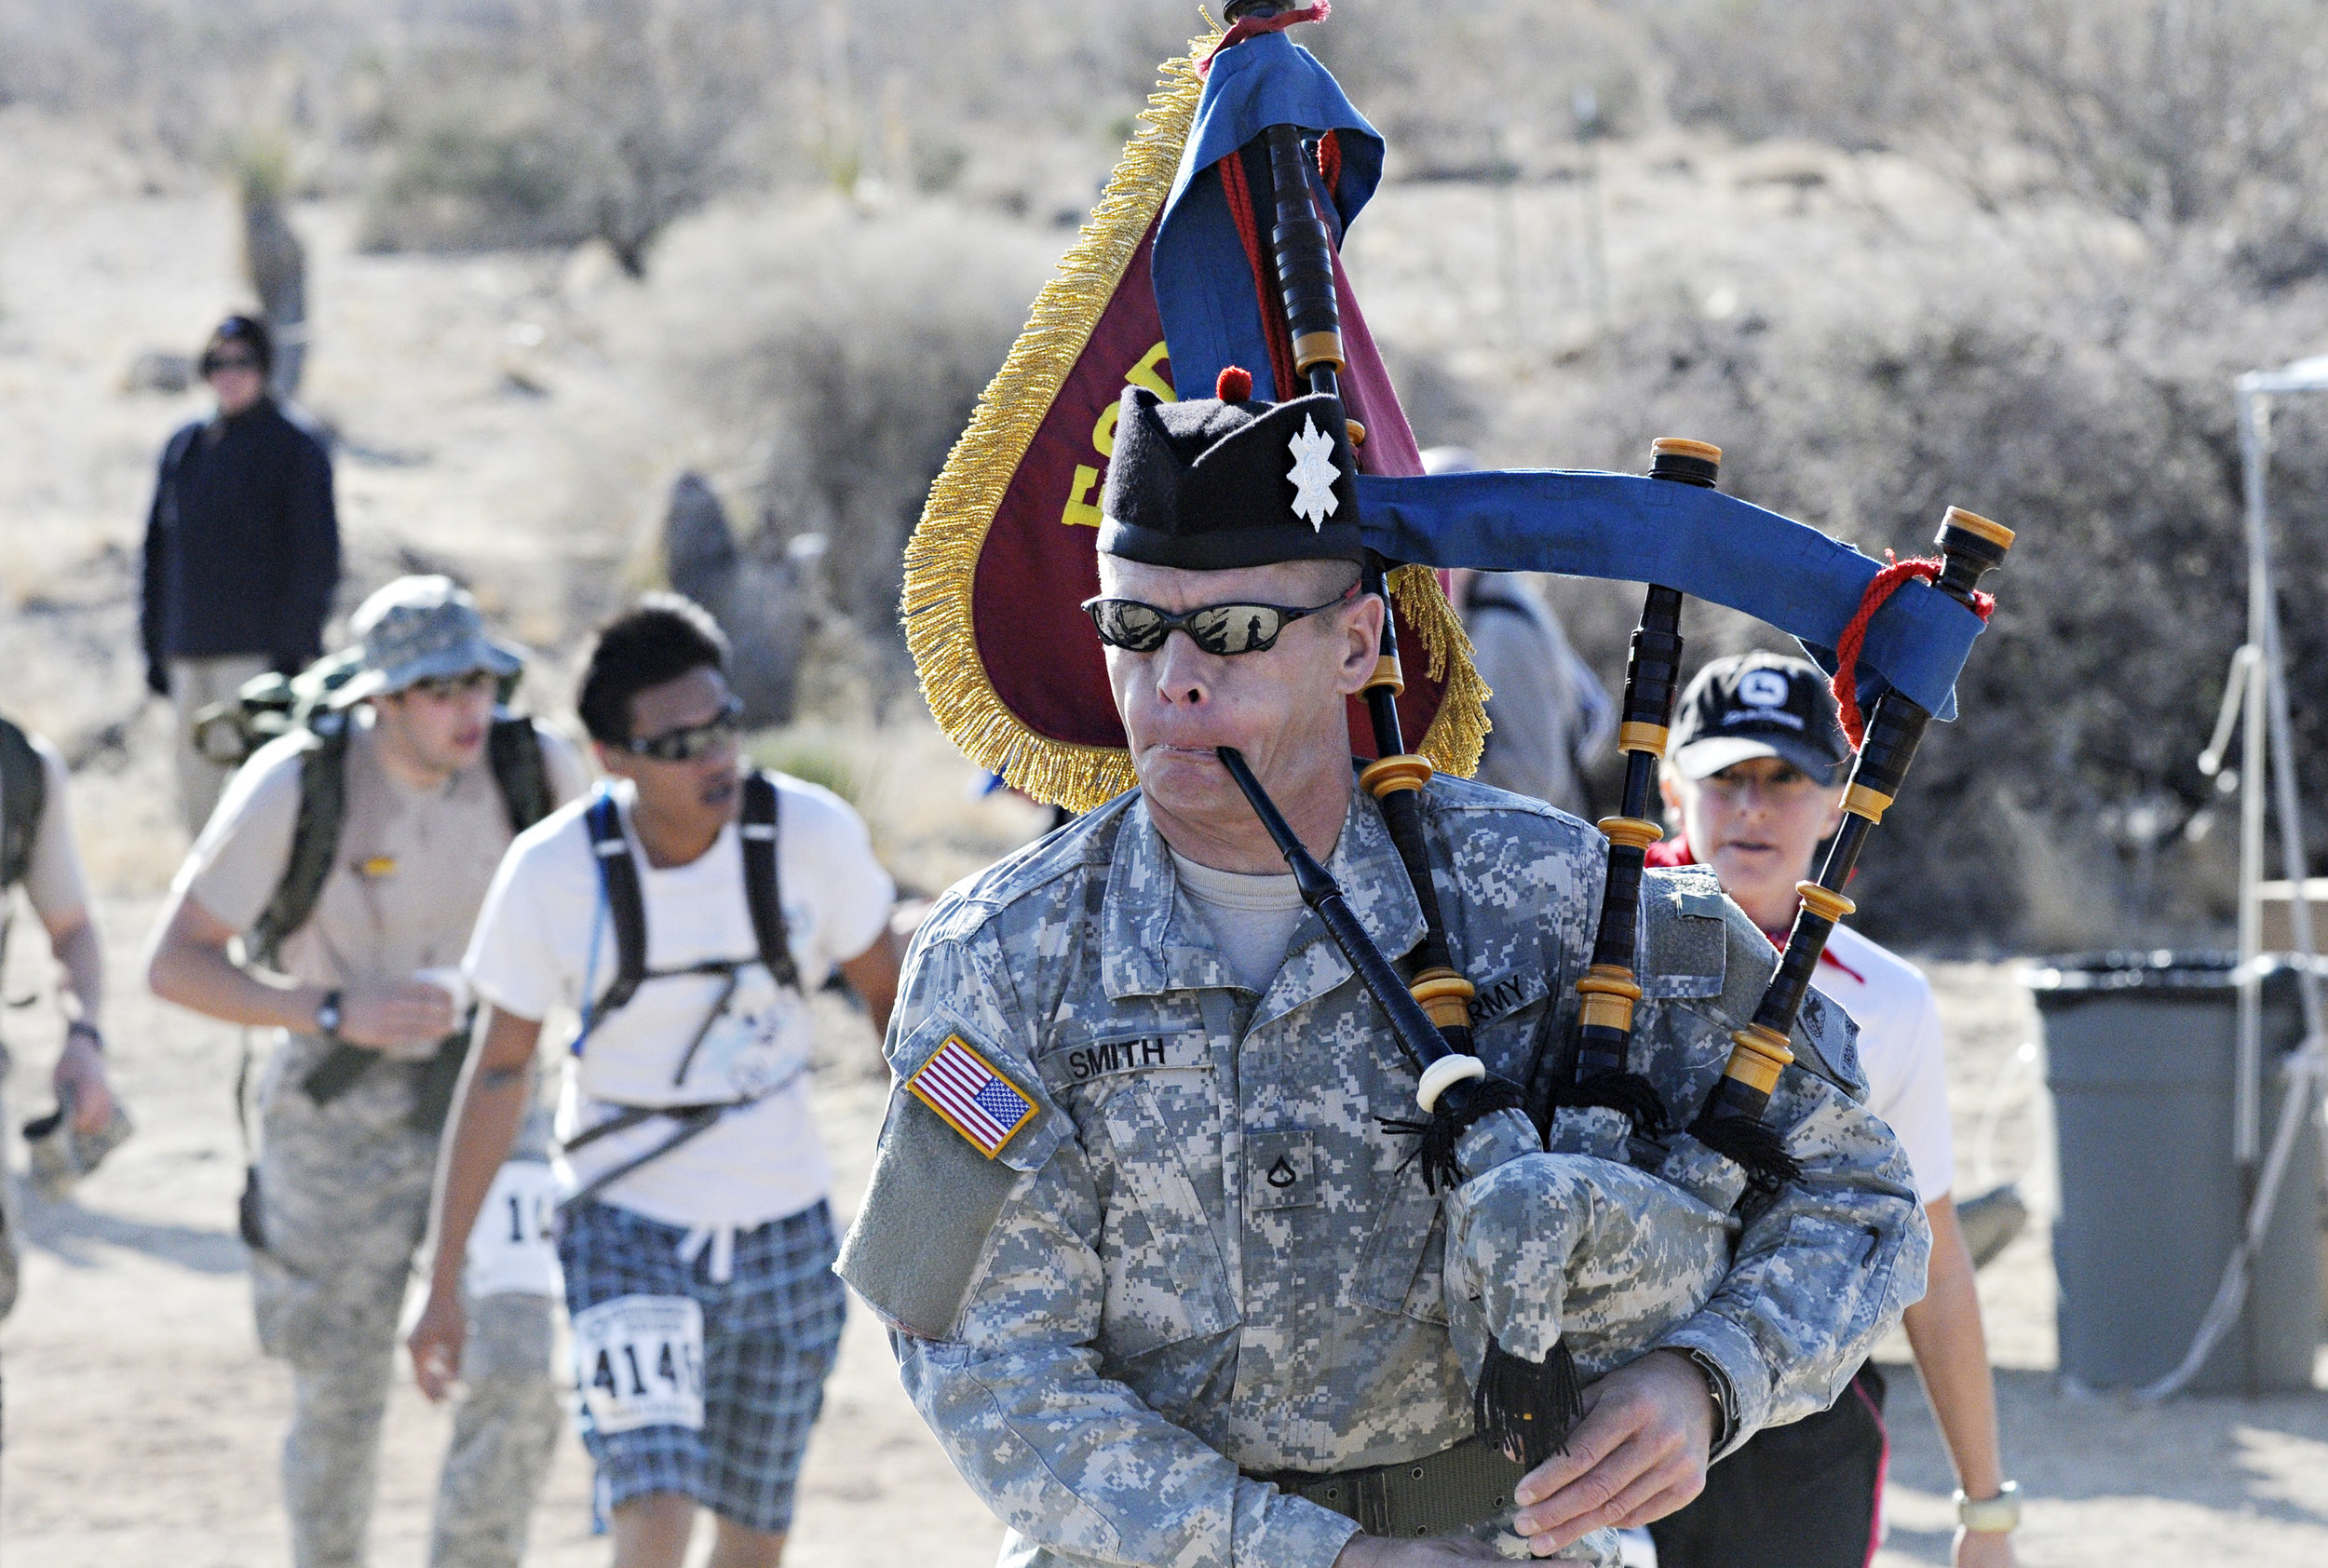 Angus Smith plays the bagpipes while marching in the 22nd Annual Bataan Memorial Death March at White Sands Missile Range, Sunday, March 27, 2011. (Morgan Petroski/Albuquerque Journal)